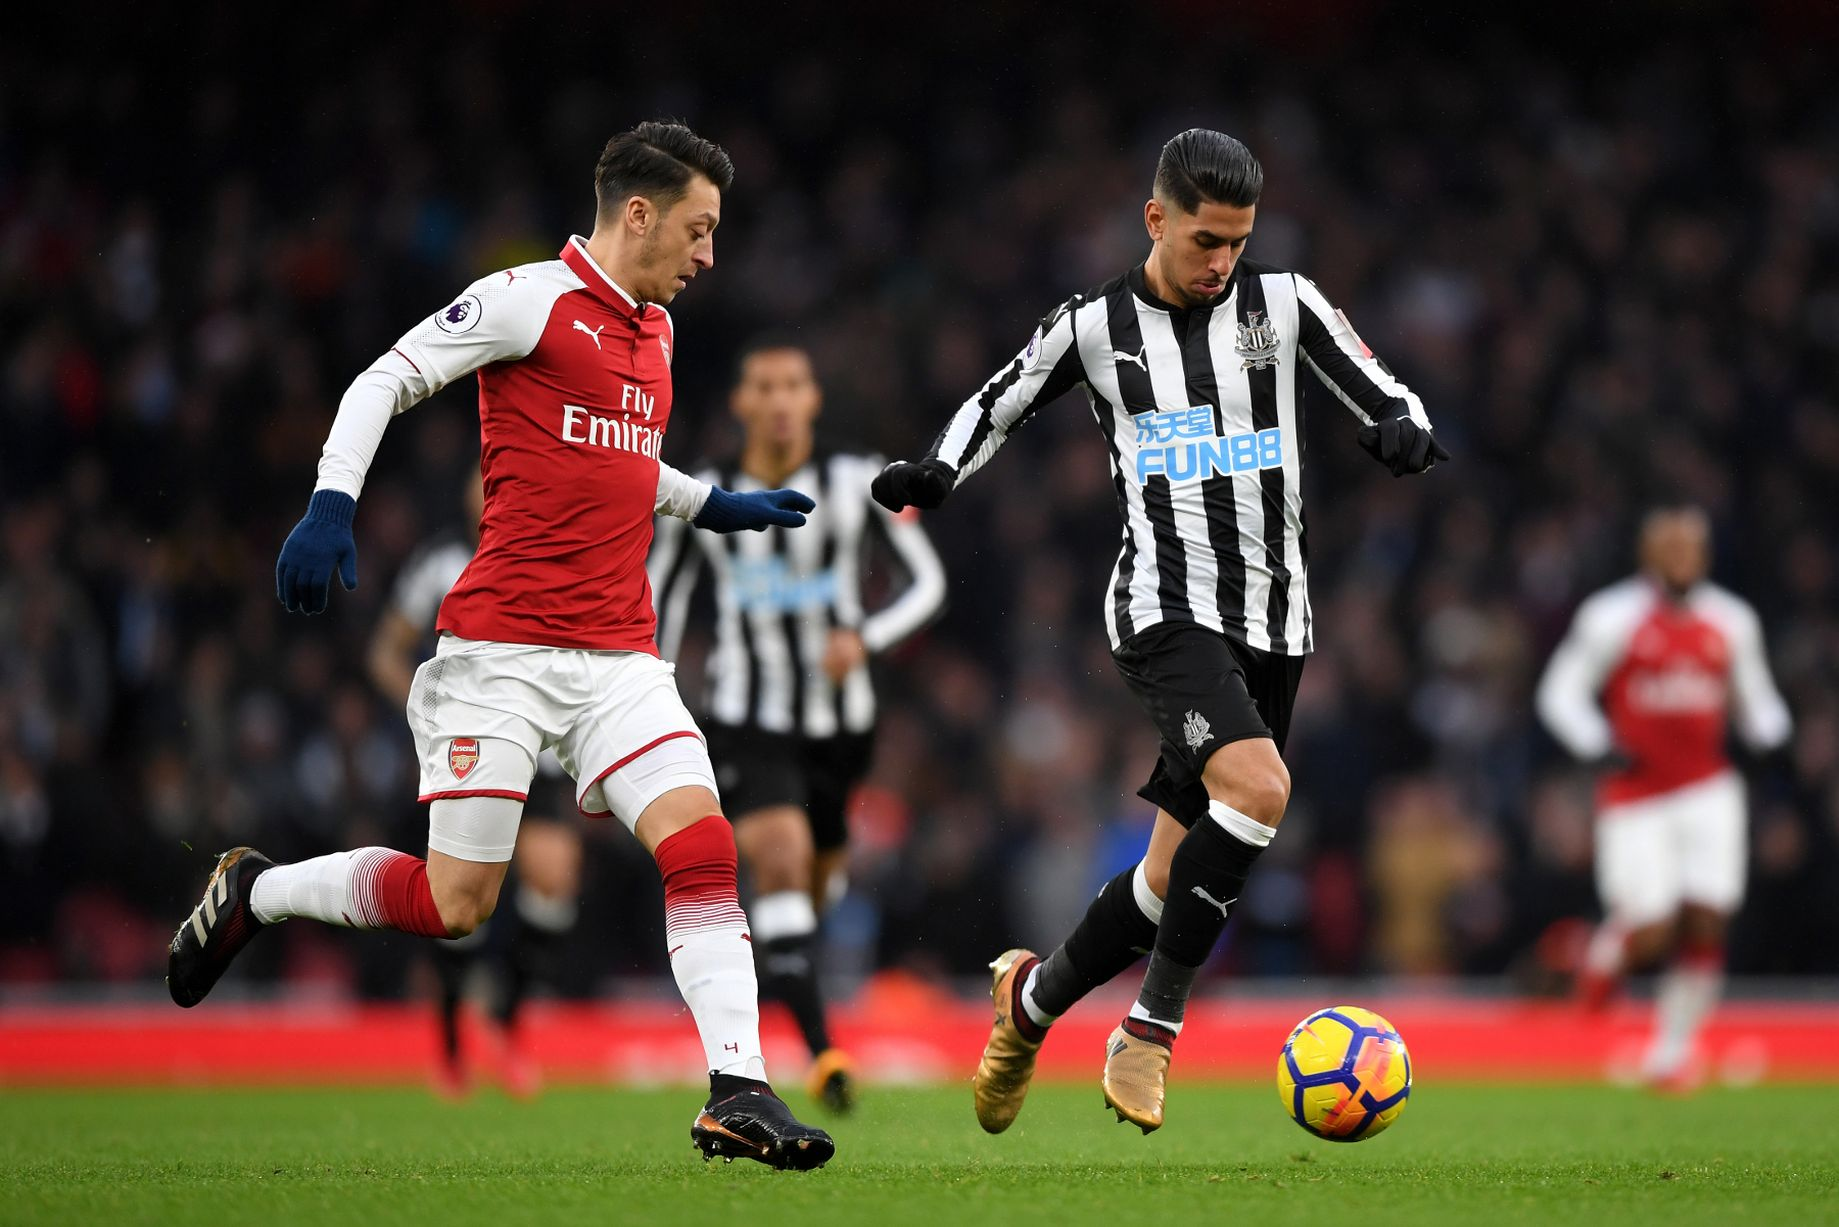 Arsenal climb to third with victory over Newcastle United